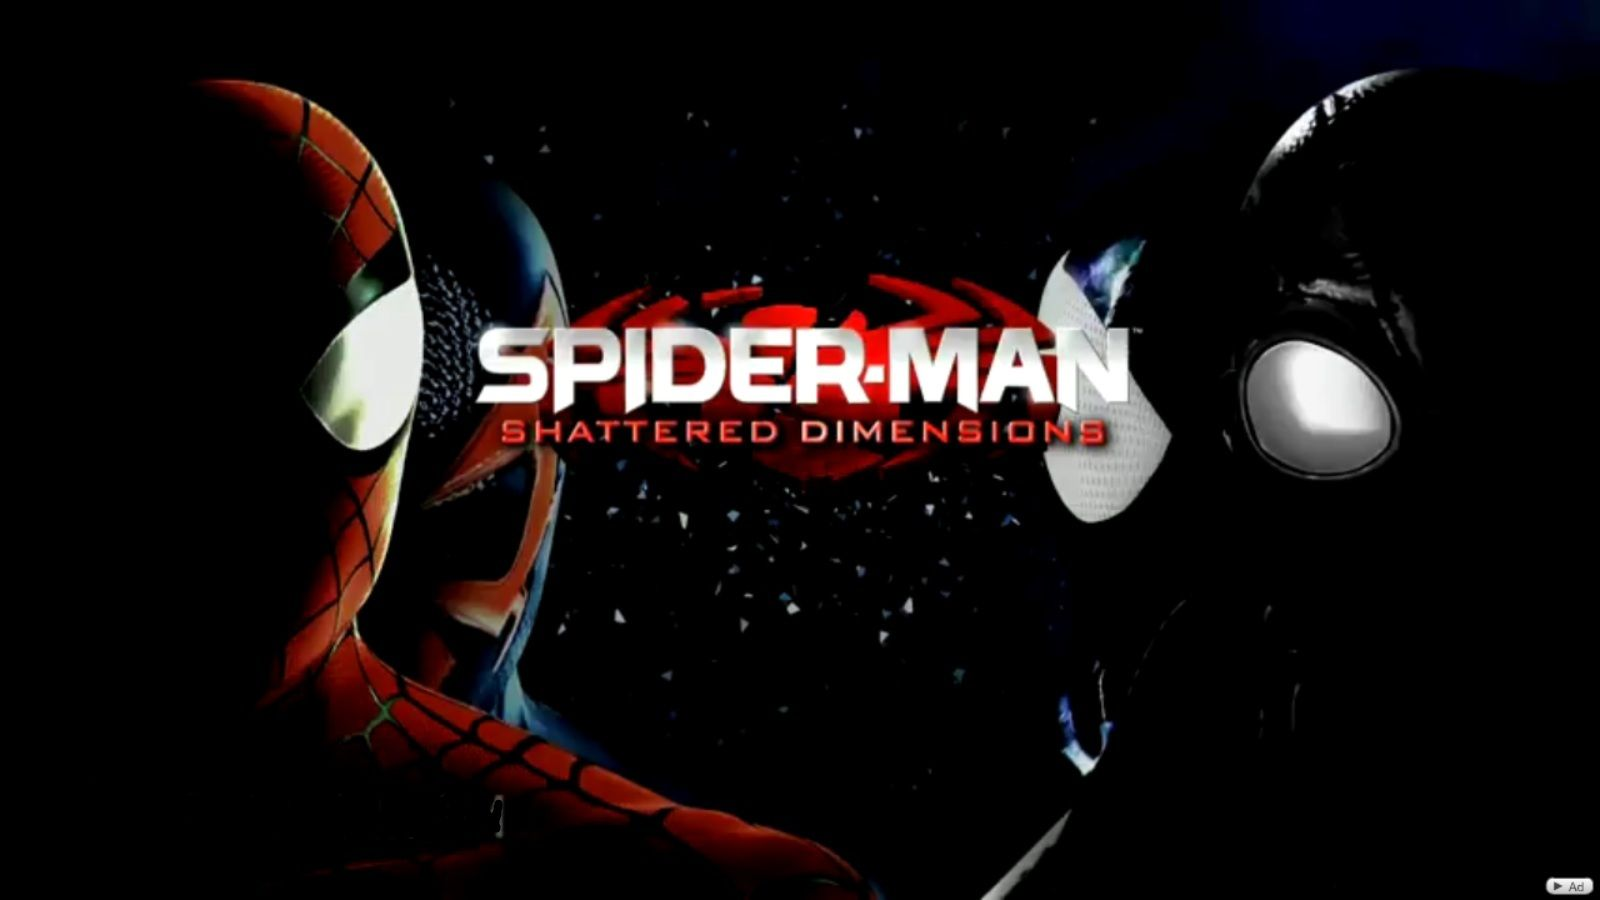 Spider Man Shattered Dimensions Hd Wallpaper 15 1600 X 900